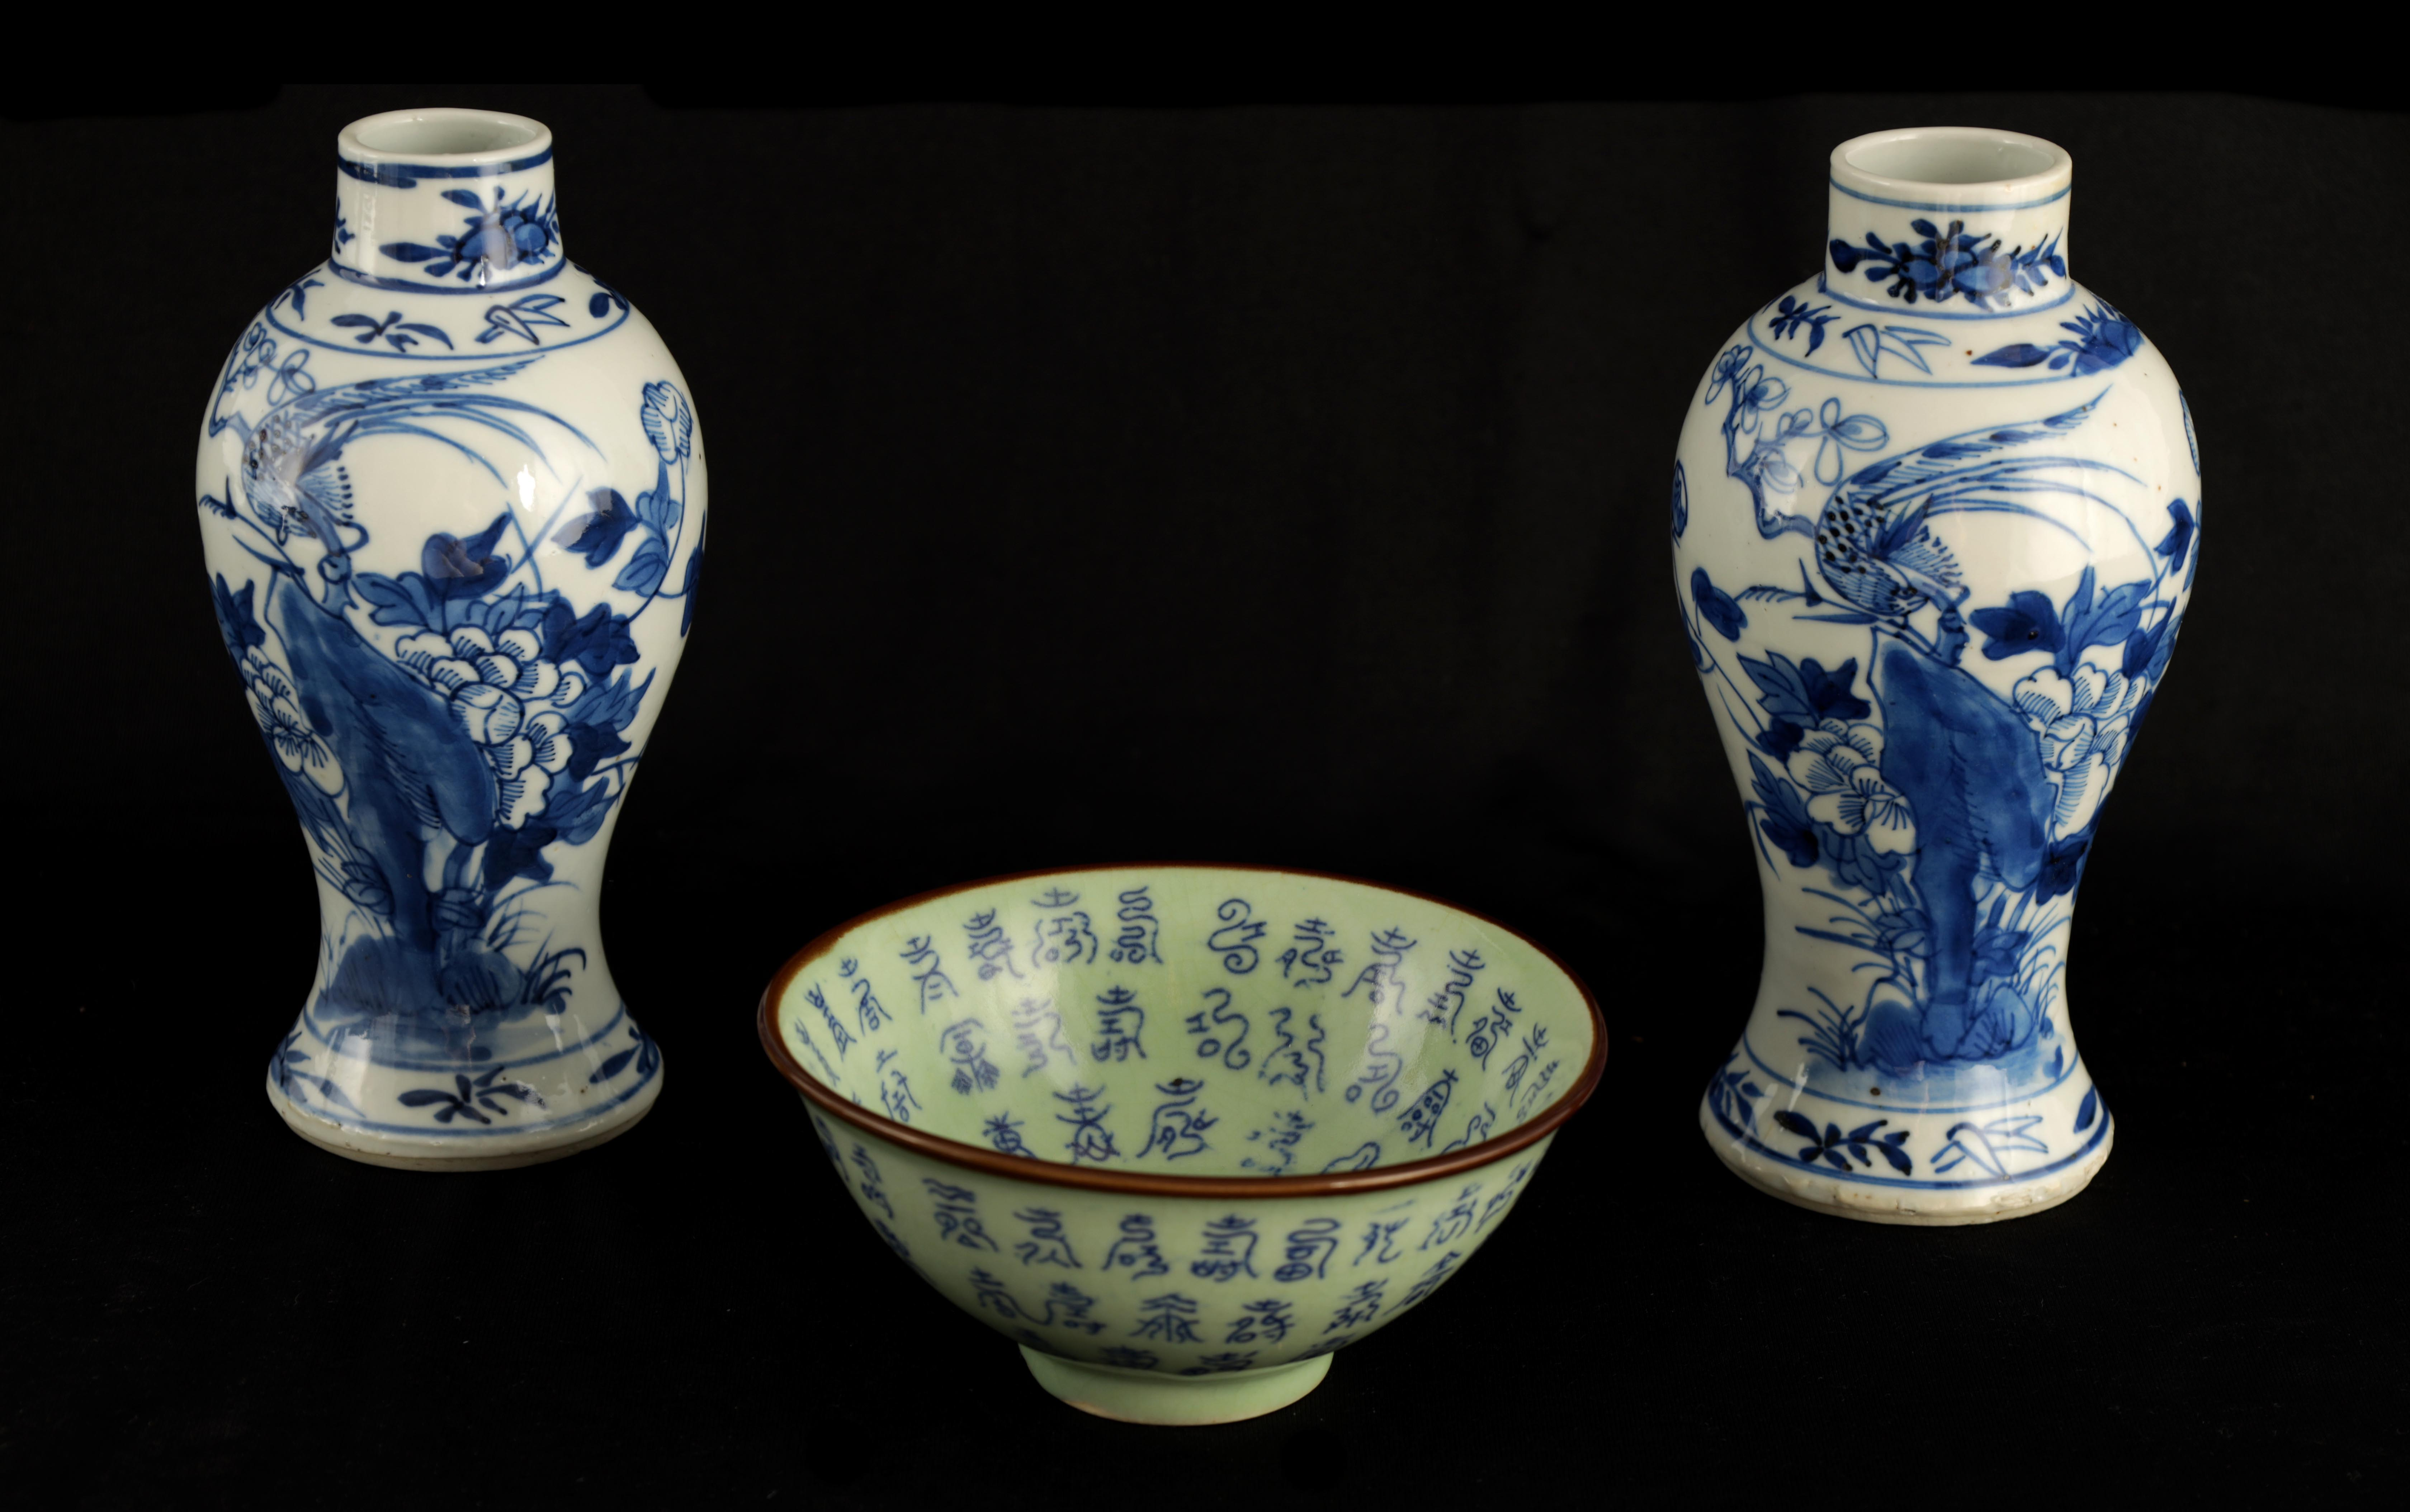 A PAIR OF 19TH CENTURY CHINESE BLUE AND WHITE VASES decorated with blossoming trees and birds 17cm